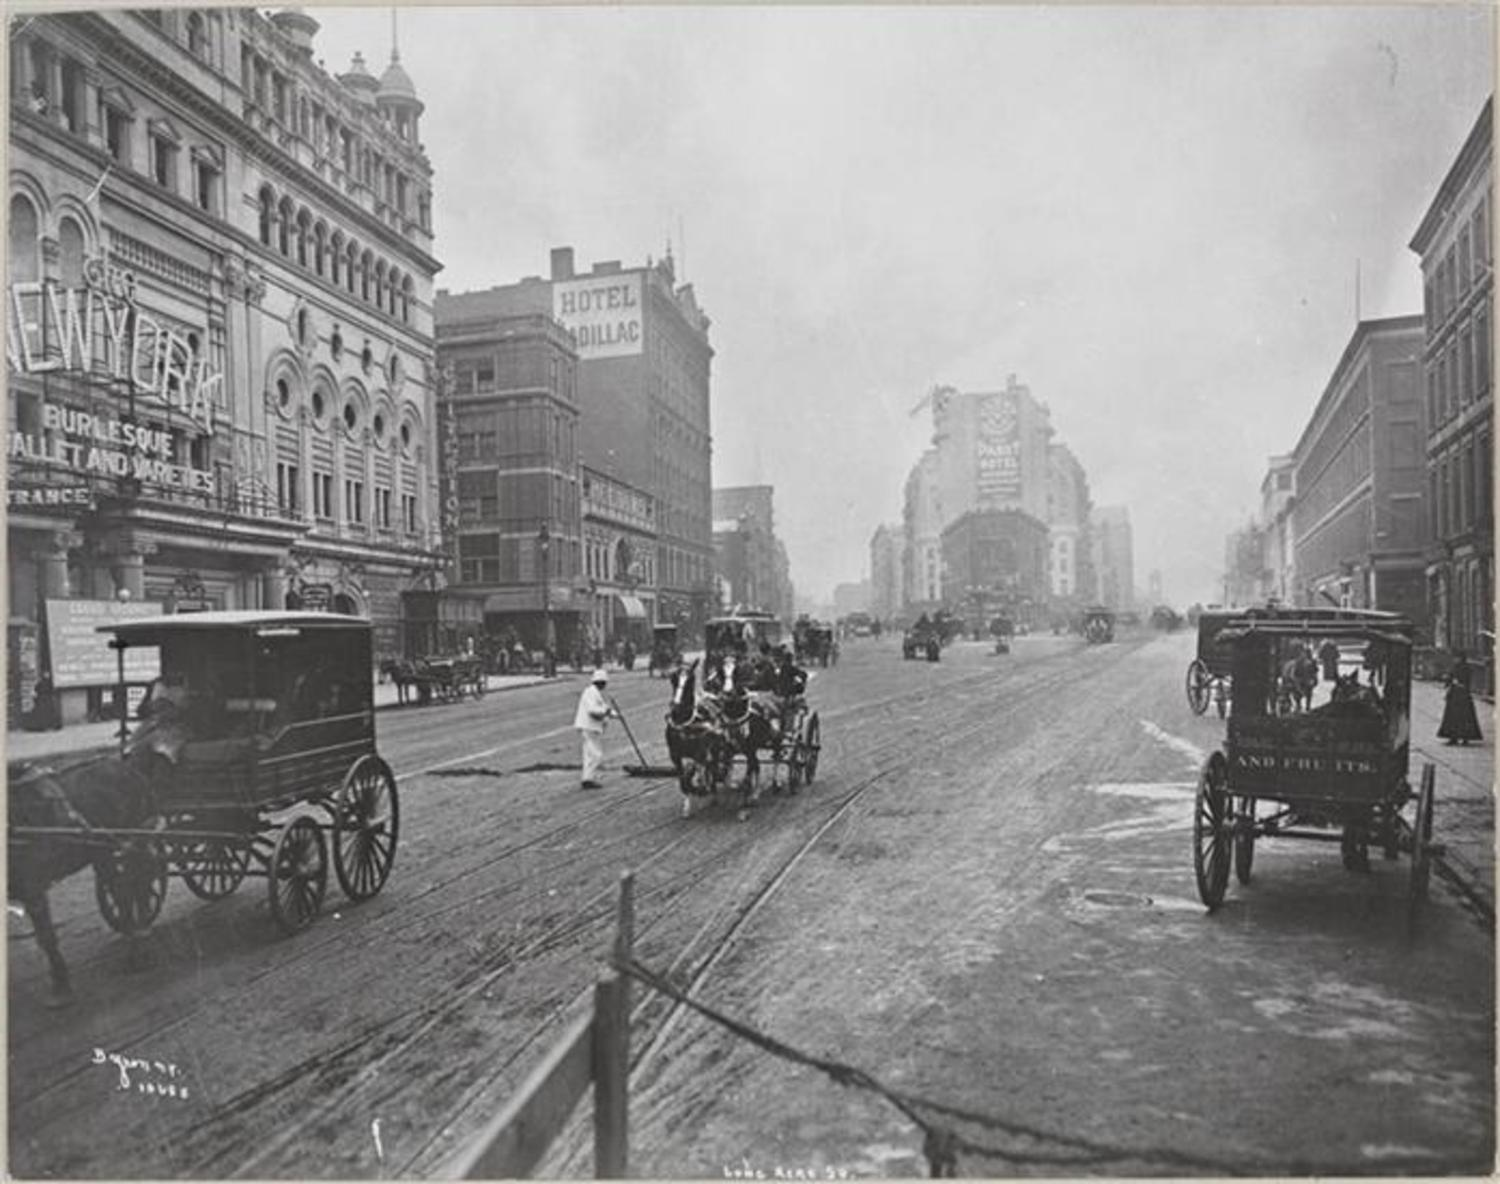 Longacre Square (Now Times Square), Broadway and 42nd Street.